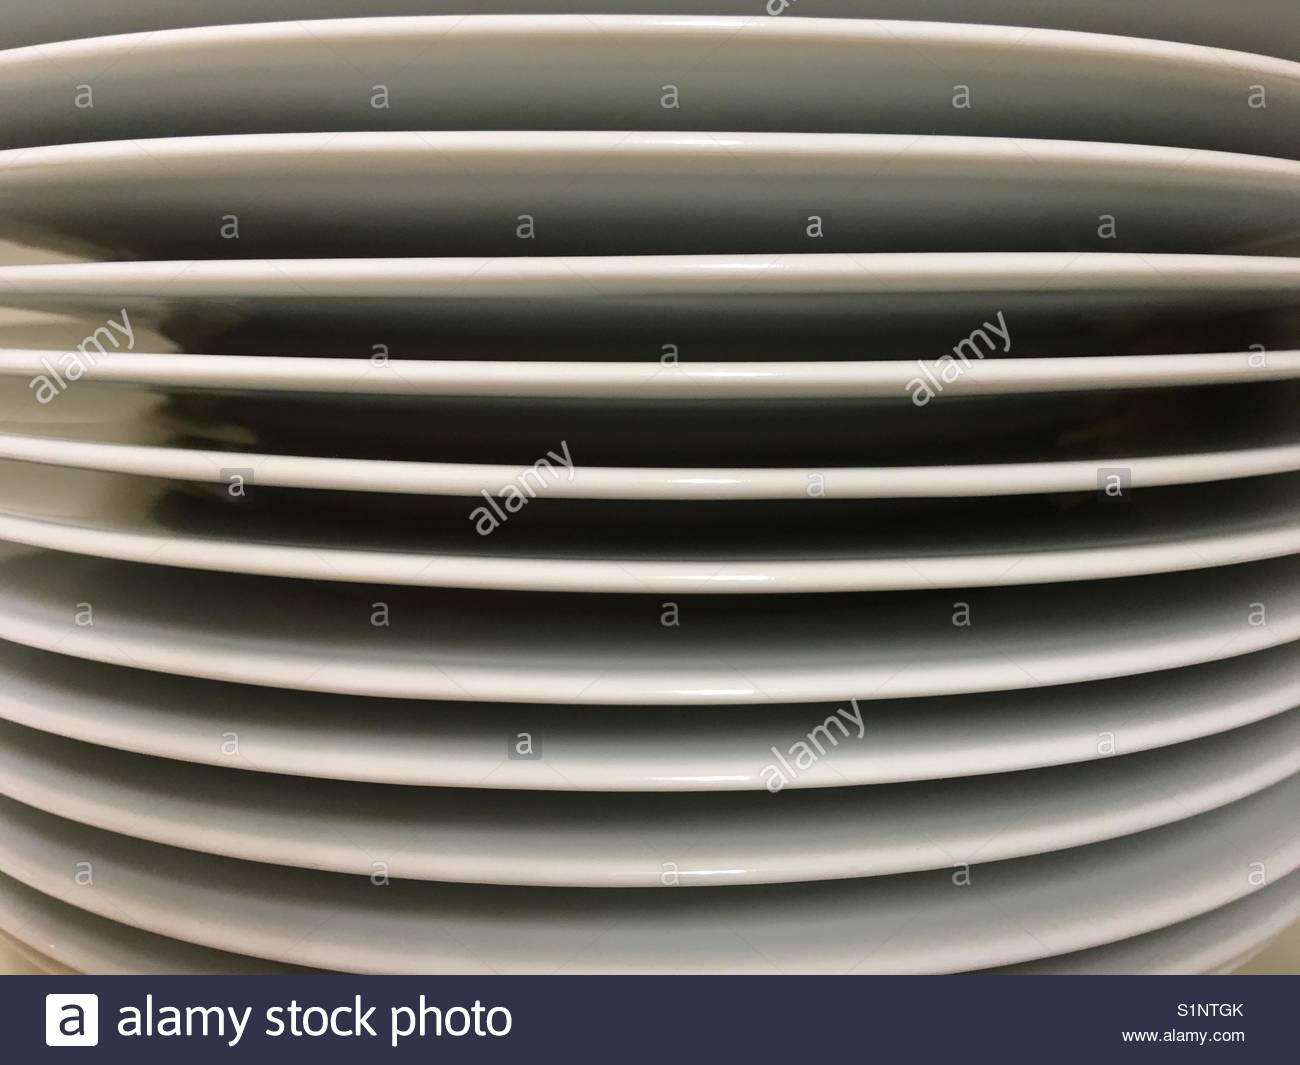 Stack of plain white plates viewed from the side - Stock Image